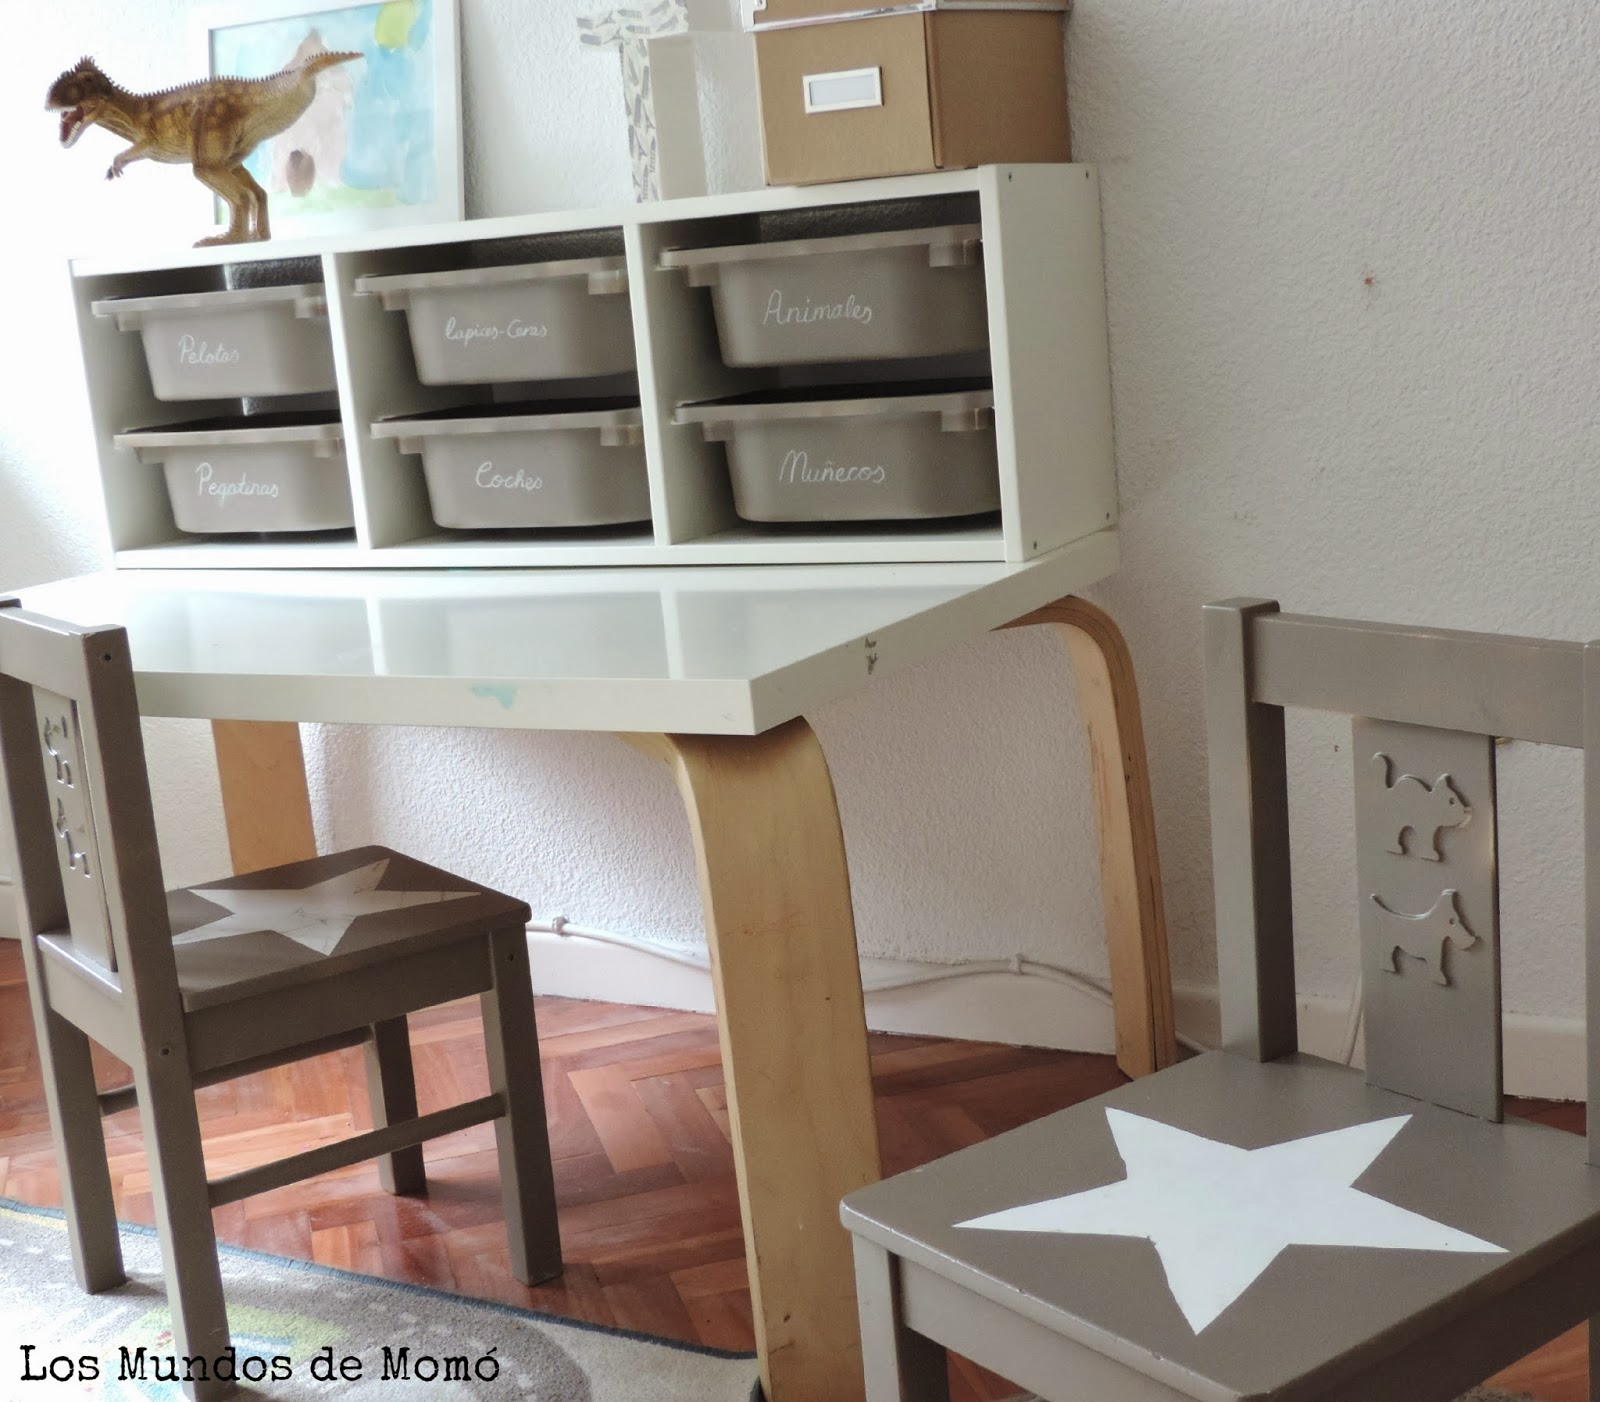 Personaliza tus muebles de ikea handbox craft lovers for Envejecer mueble blanco ikea